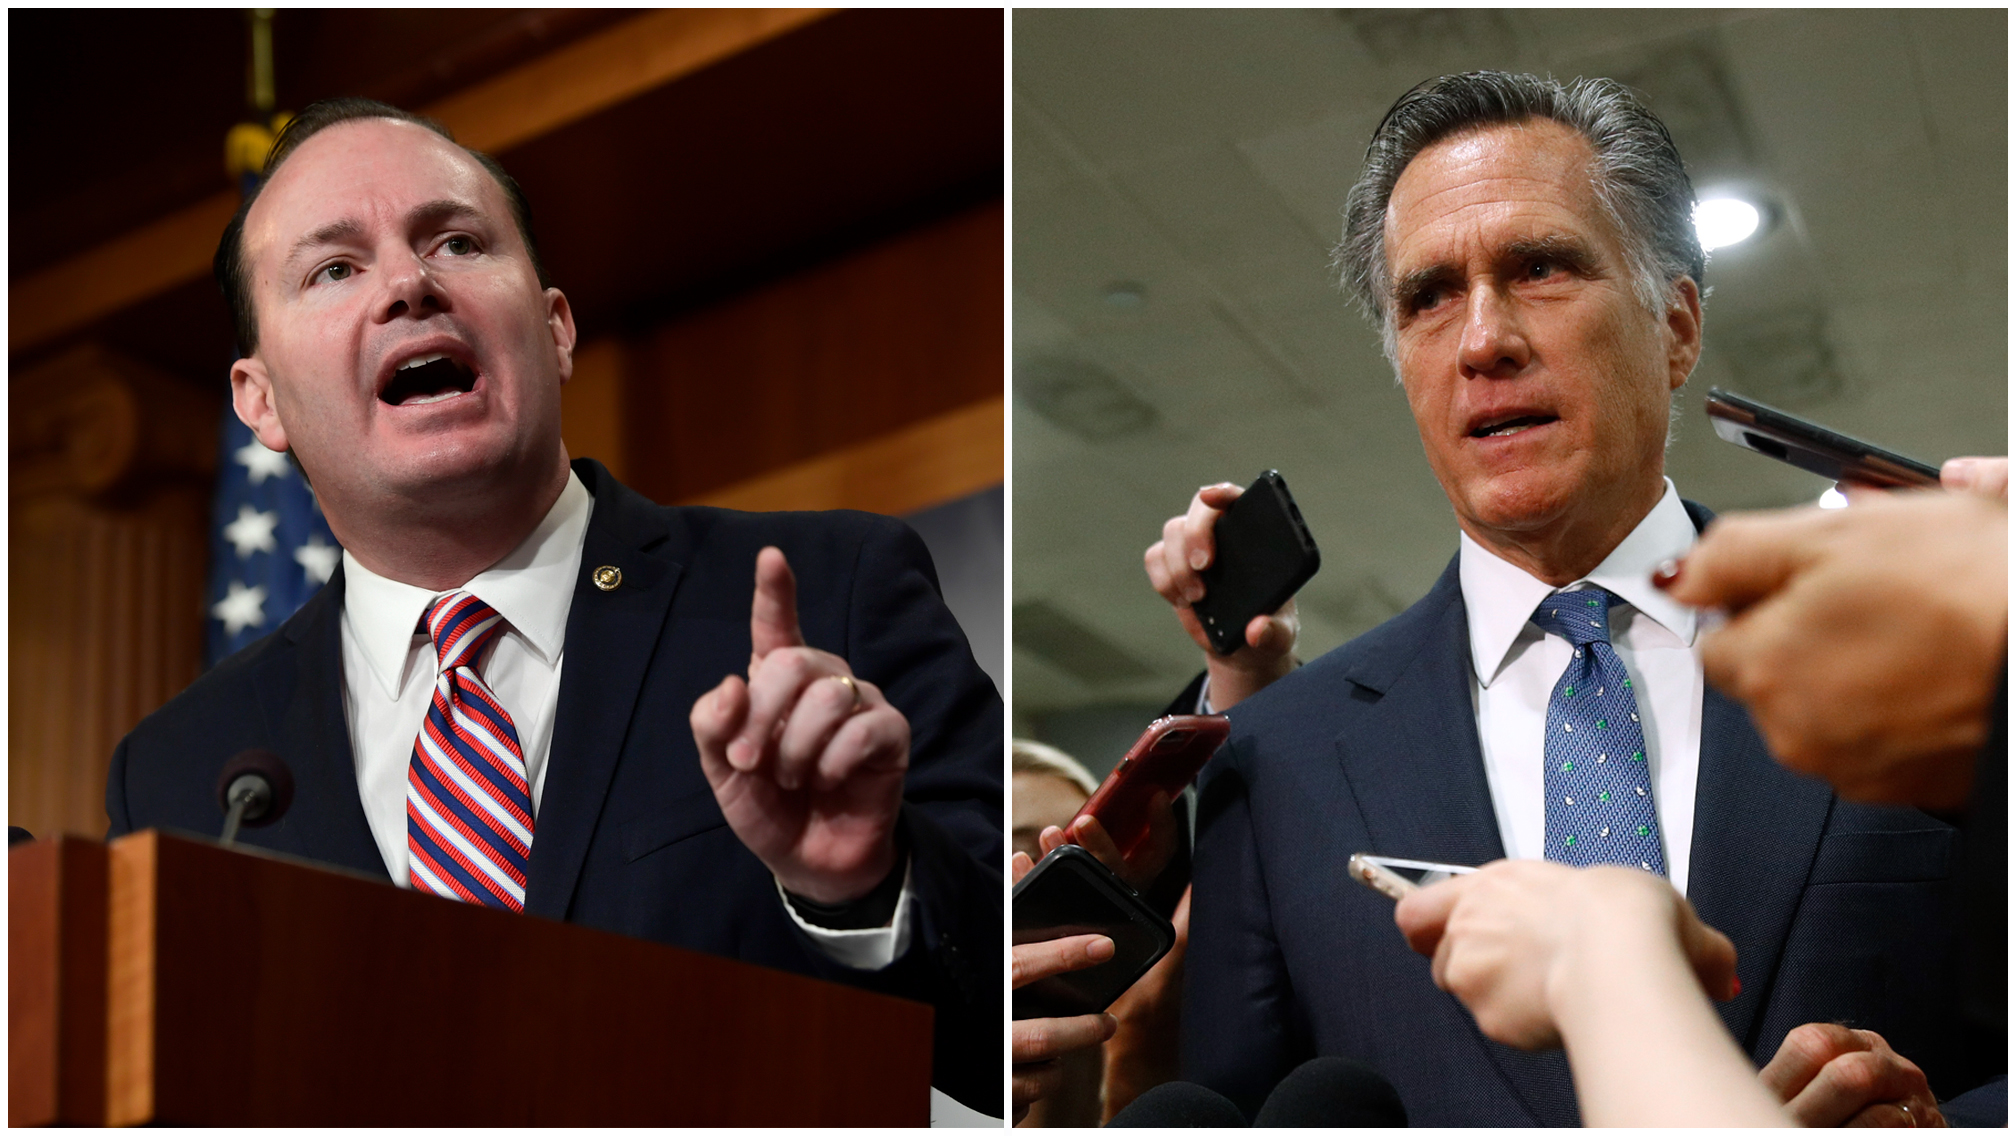 Sen. Mike Lee speaks during a news conference, while Sen. Mitt Romney speaks to reporters.